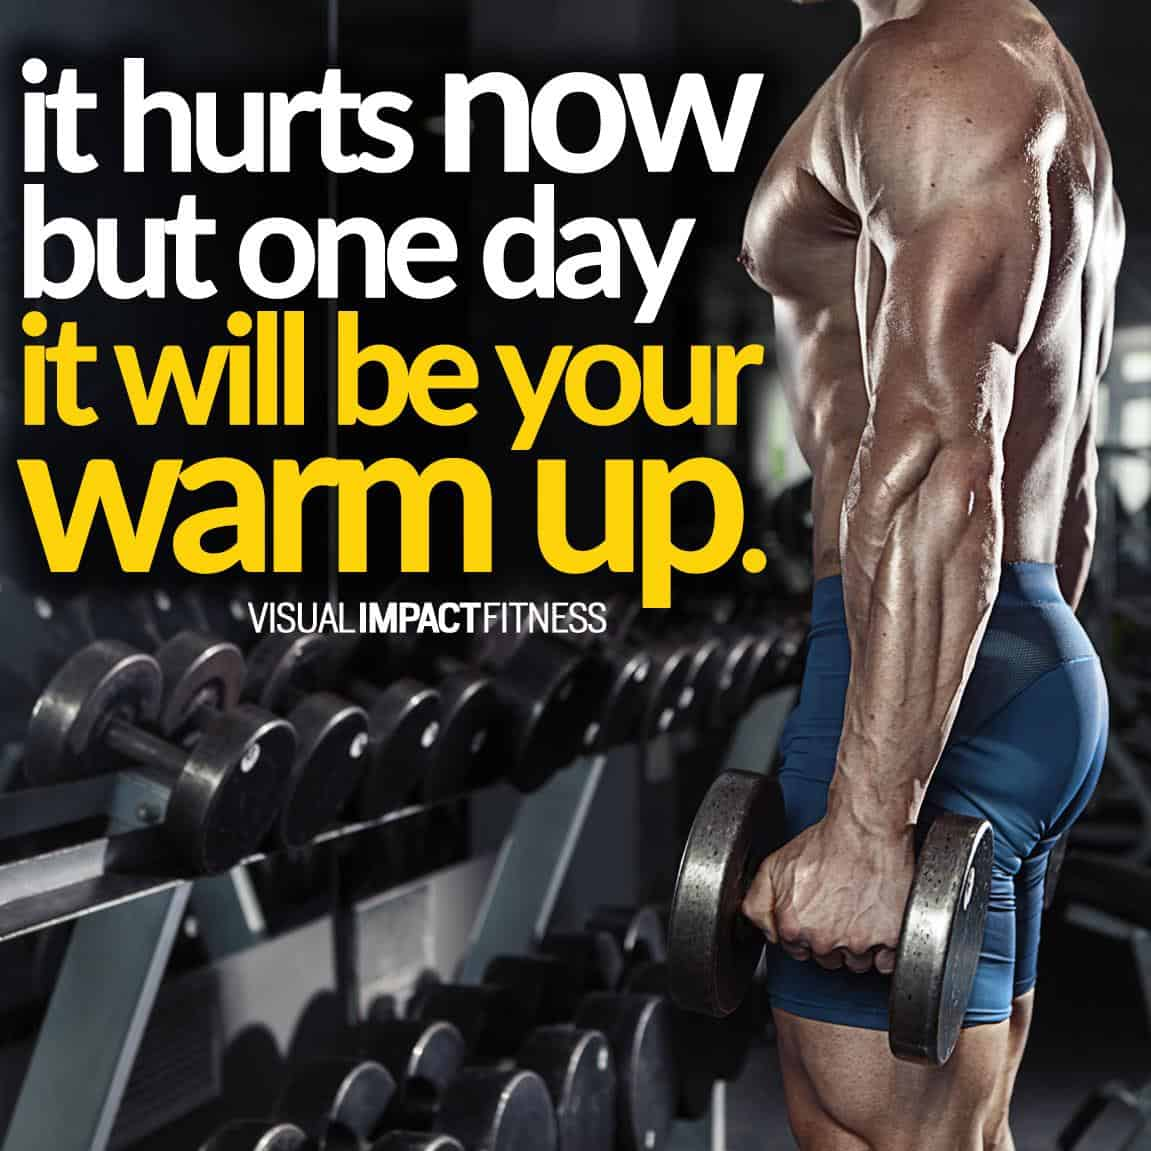 It hurts now but one day it will be your warm up.